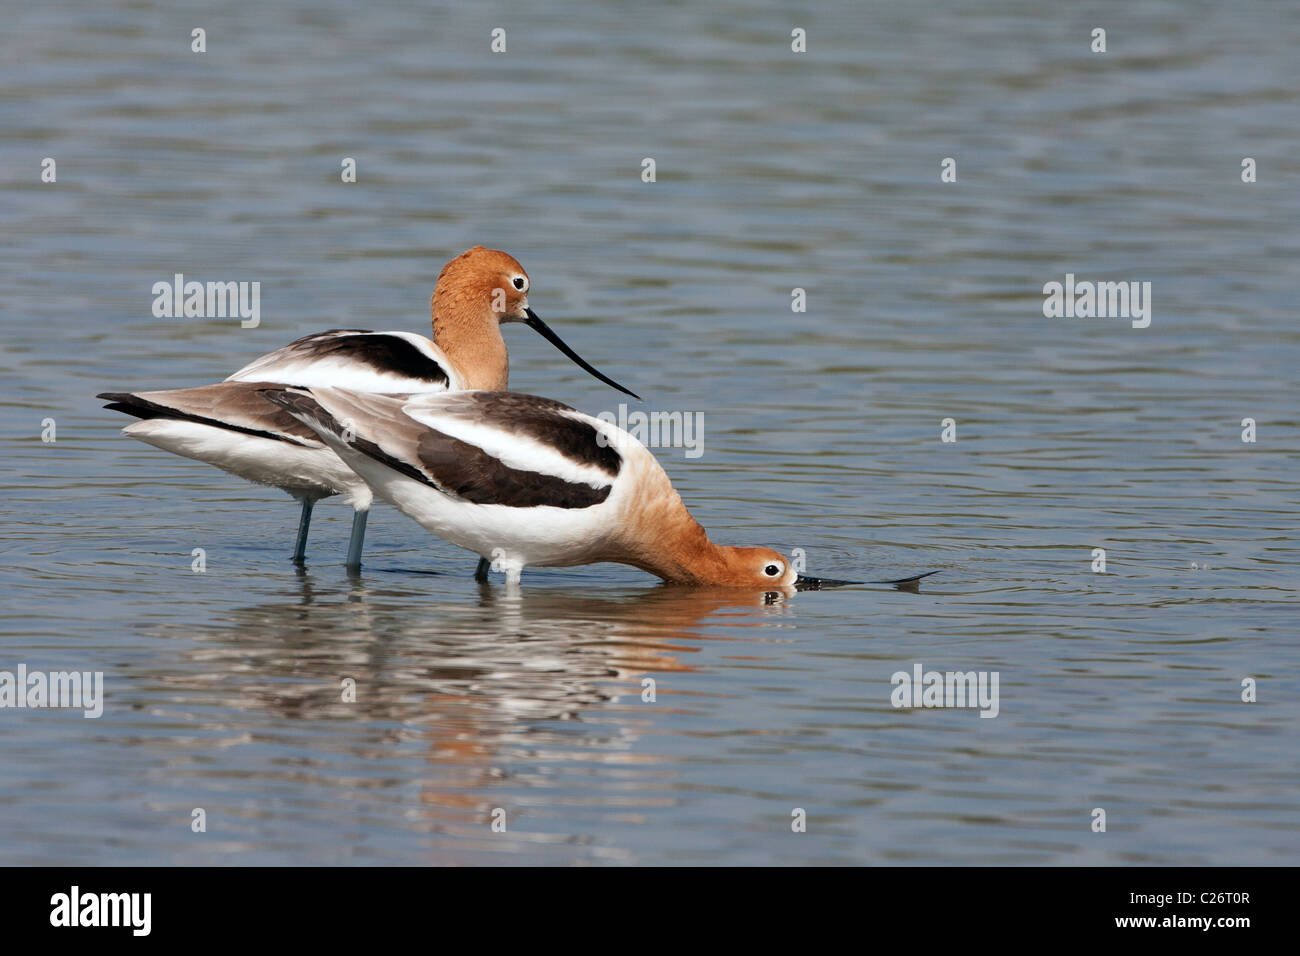 American Avocets in Pre Mating Posture - Stock Image